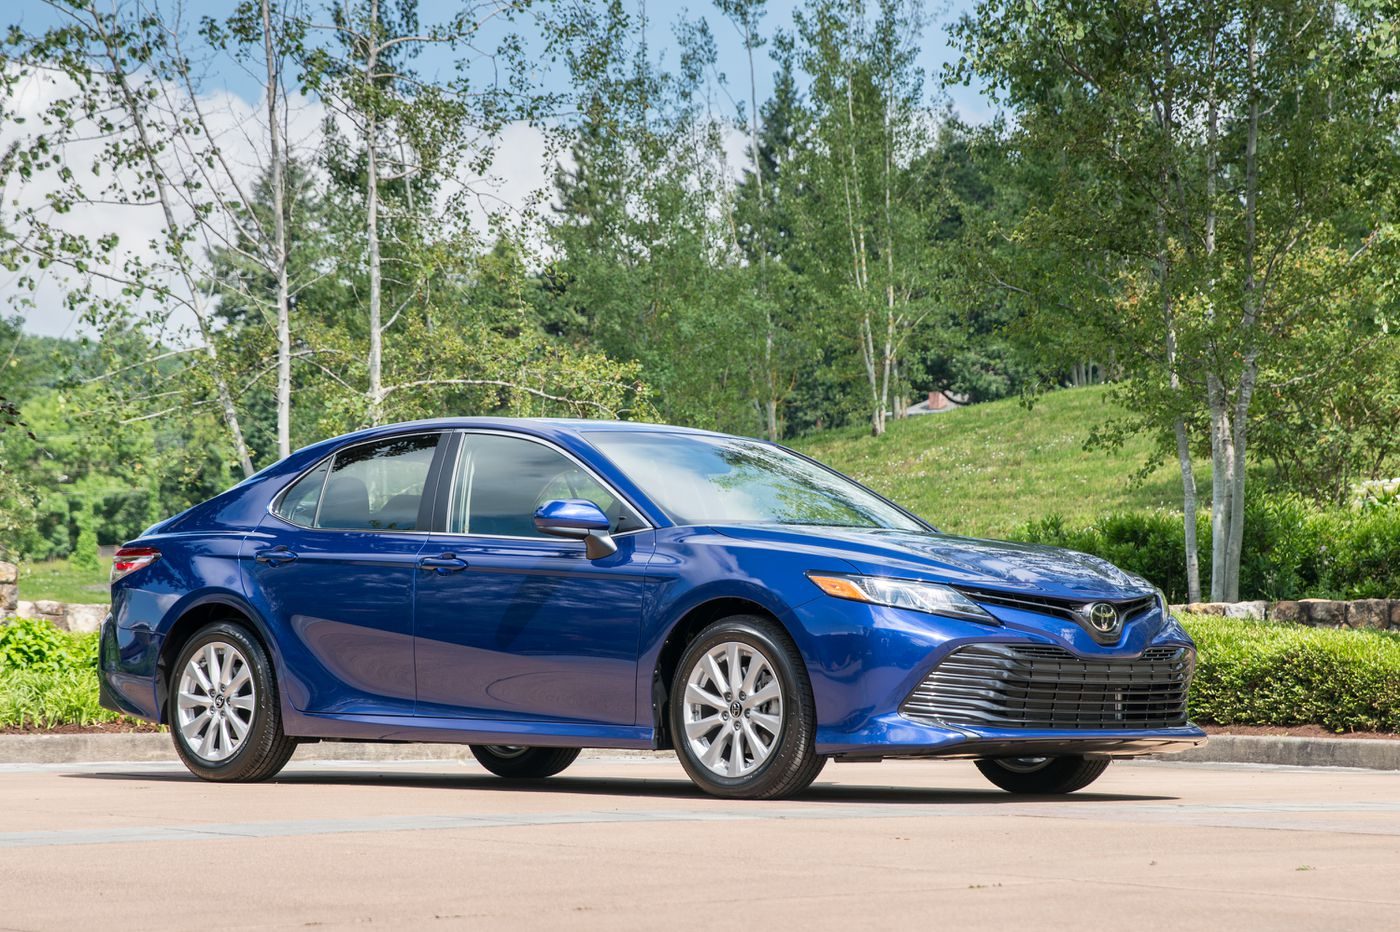 Toyota hypes 2018 Camry's sporty look, but are looks enough?